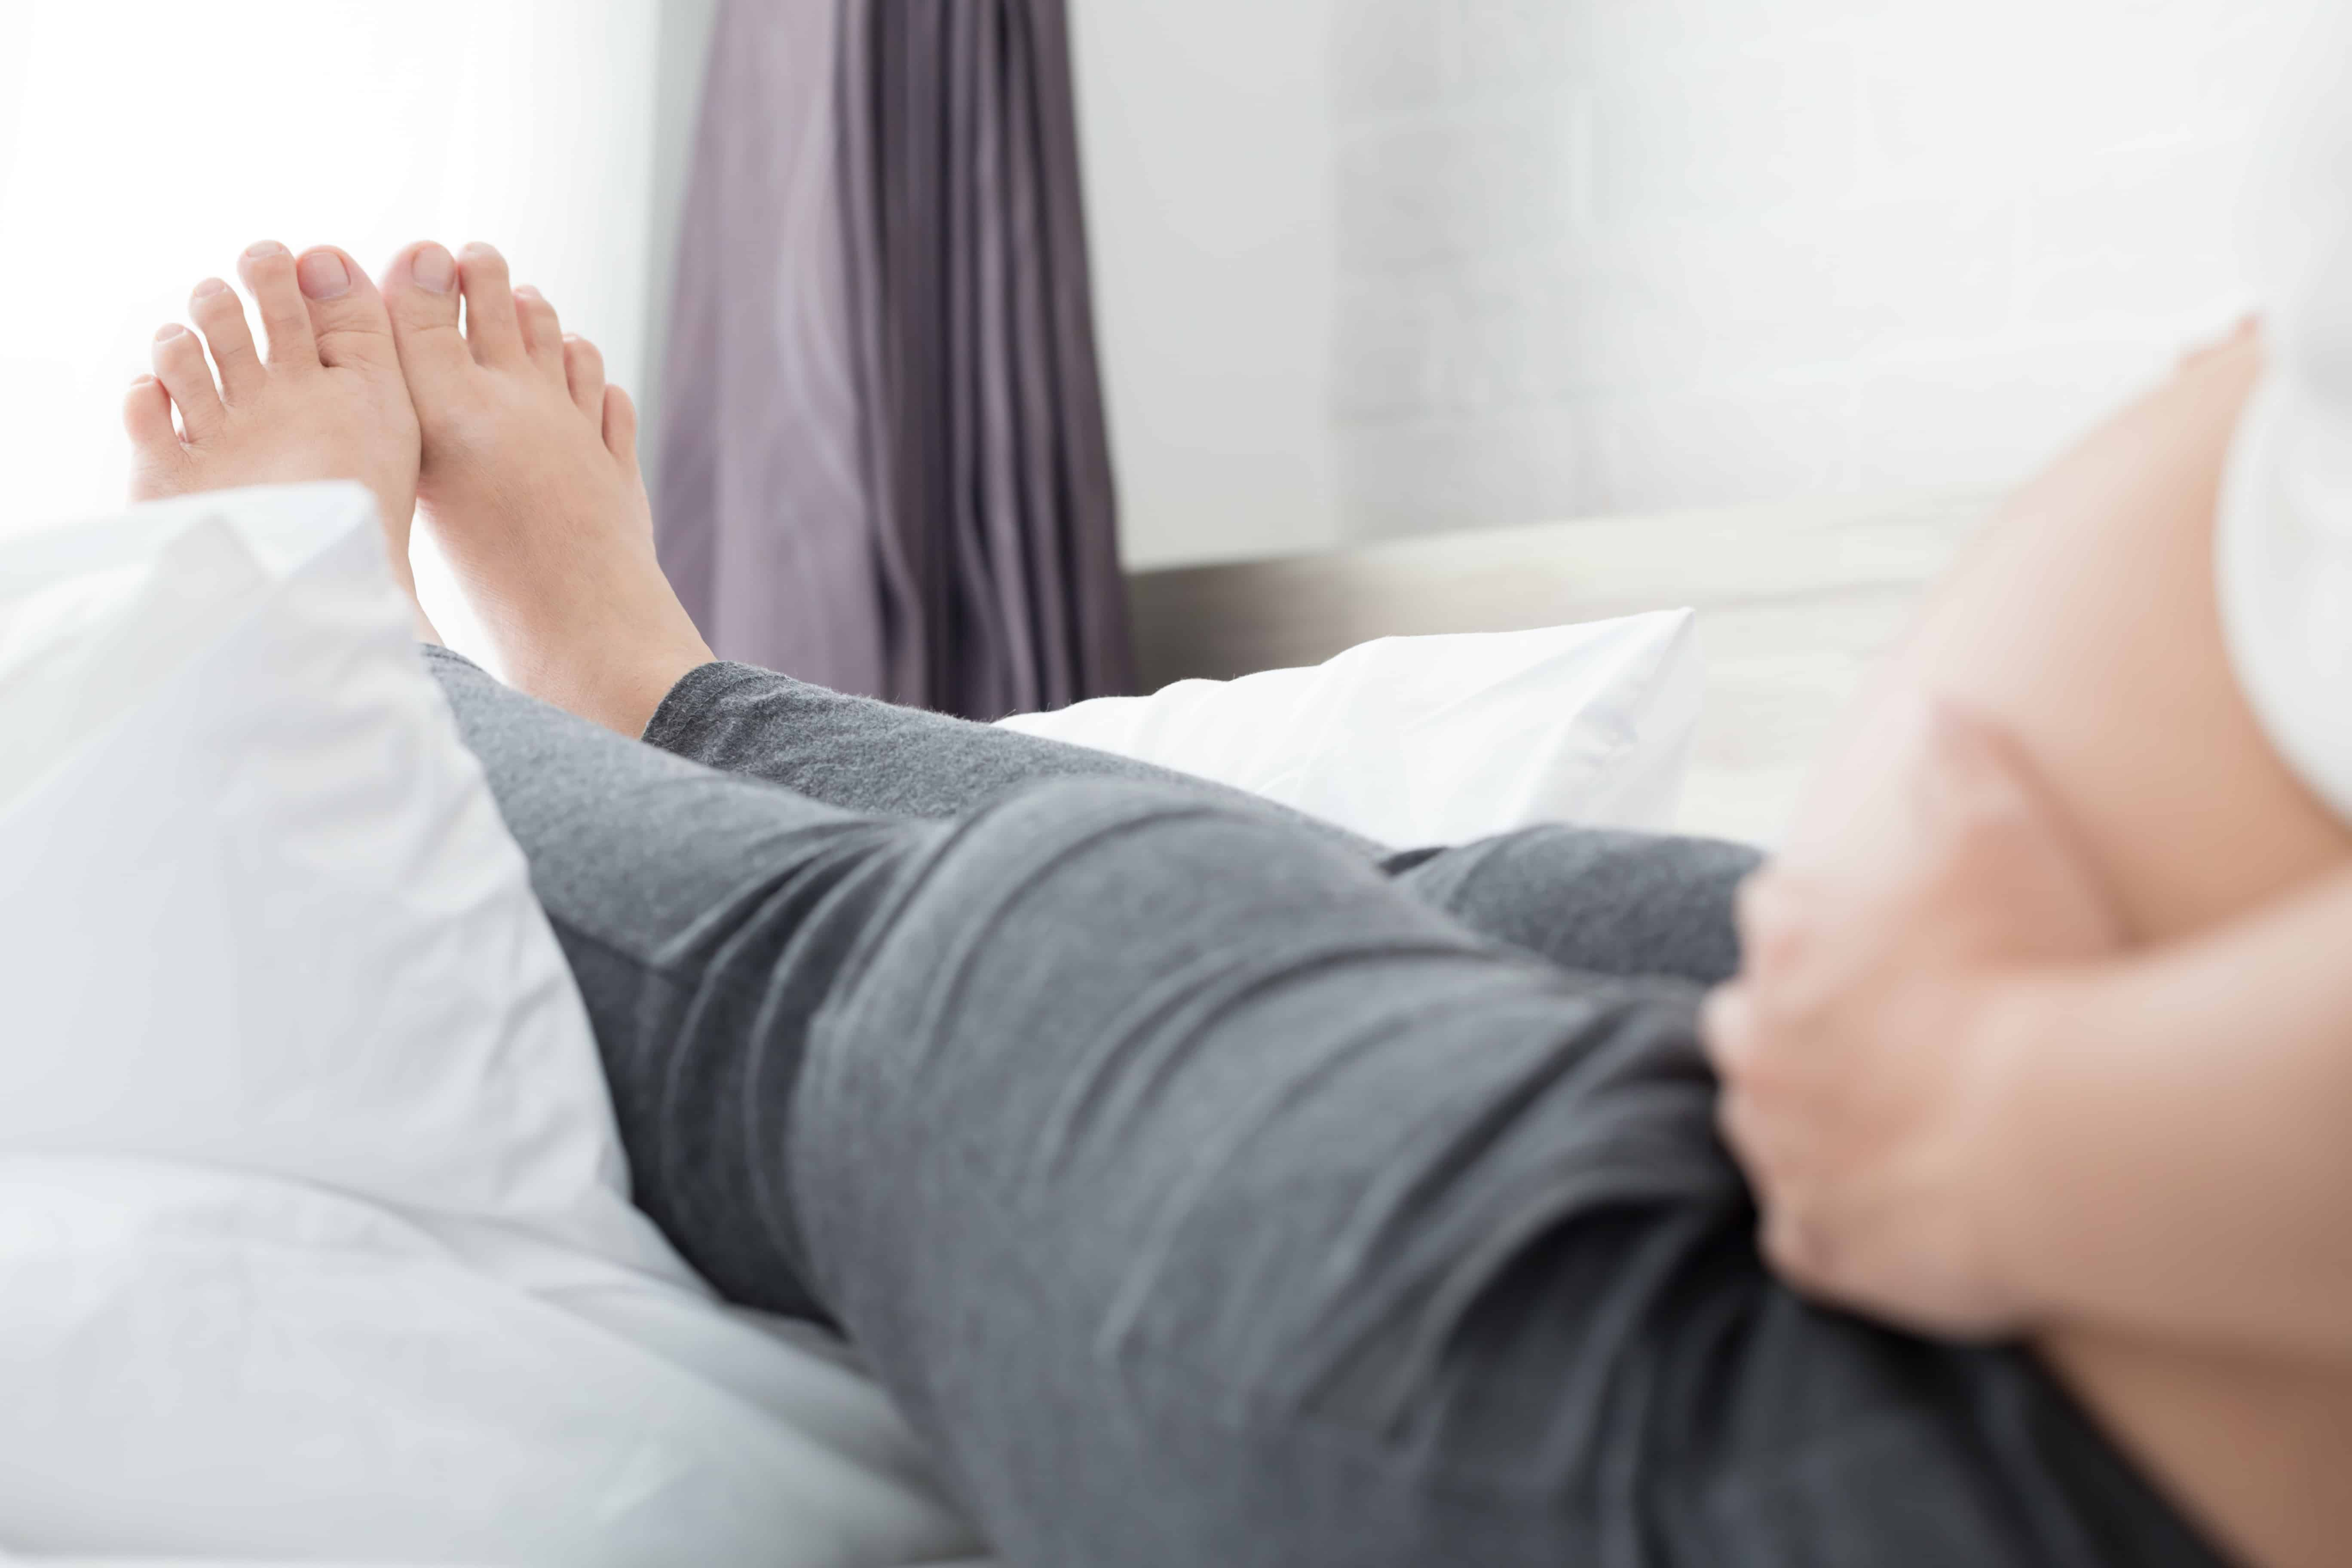 How To Prevent Swelling During Pregnancy